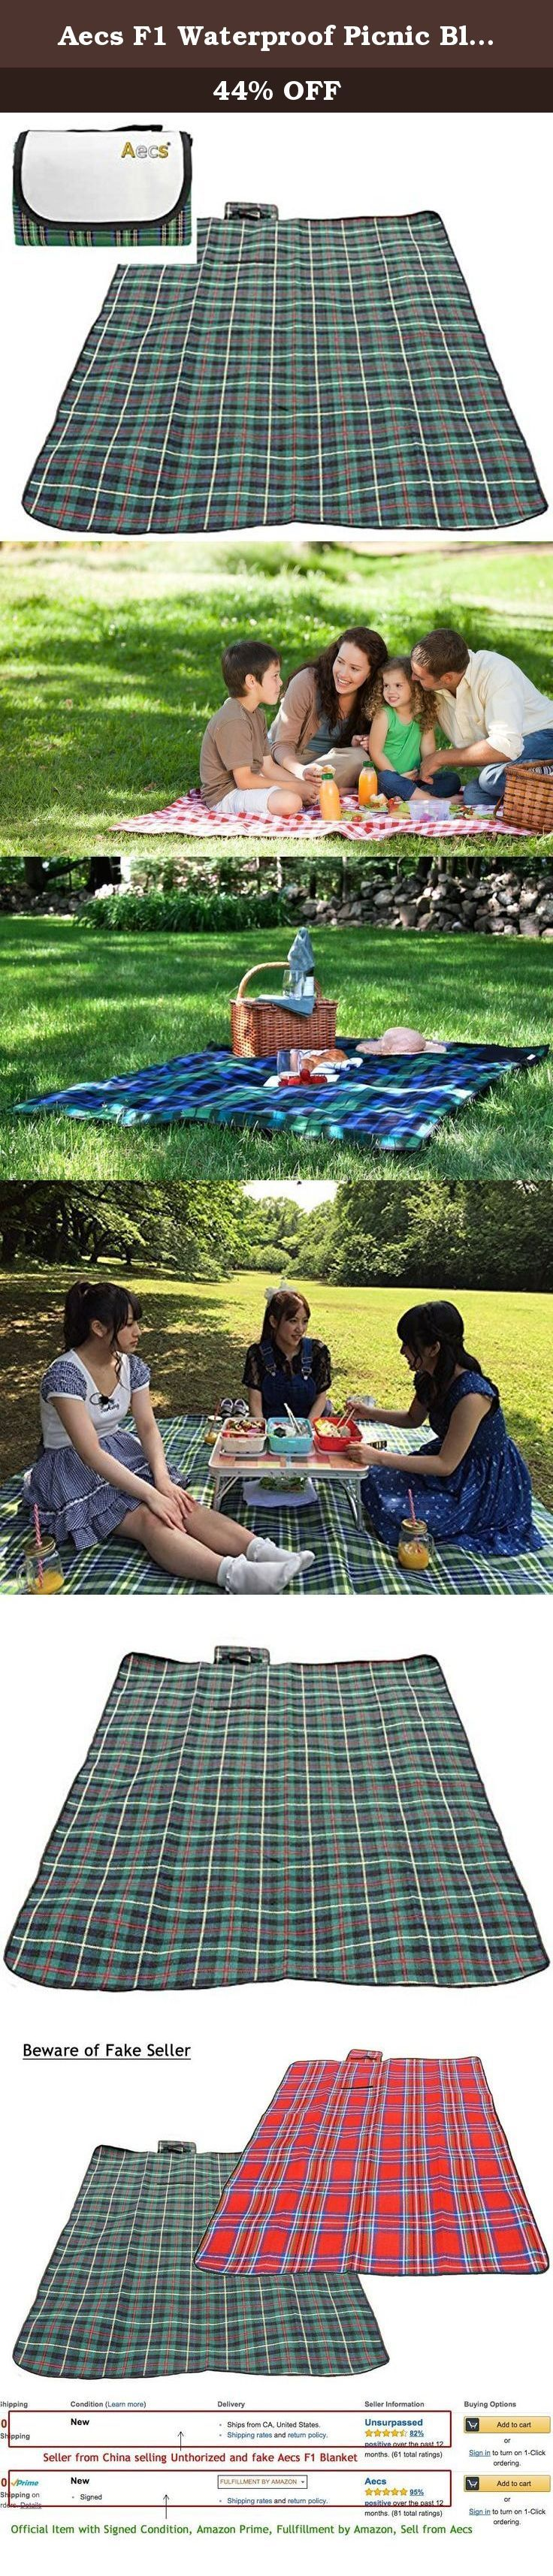 Aecs F1 Waterproof Picnic Blanket Portable Outdoor Mat Blanket for Picnic and Outdoor Camping (Green). This picnic blanket are Completely Waterproof and Sand proof. You do not have to worry about sitting outdoor and get wet with bad mood. It is surely convenient to bring along anywhere, because F1 Outdoor Portable Waterproof Picnic Blanket are flippable into small size down to 8 inch length. You can put in your backpack, store in car rear , etc.